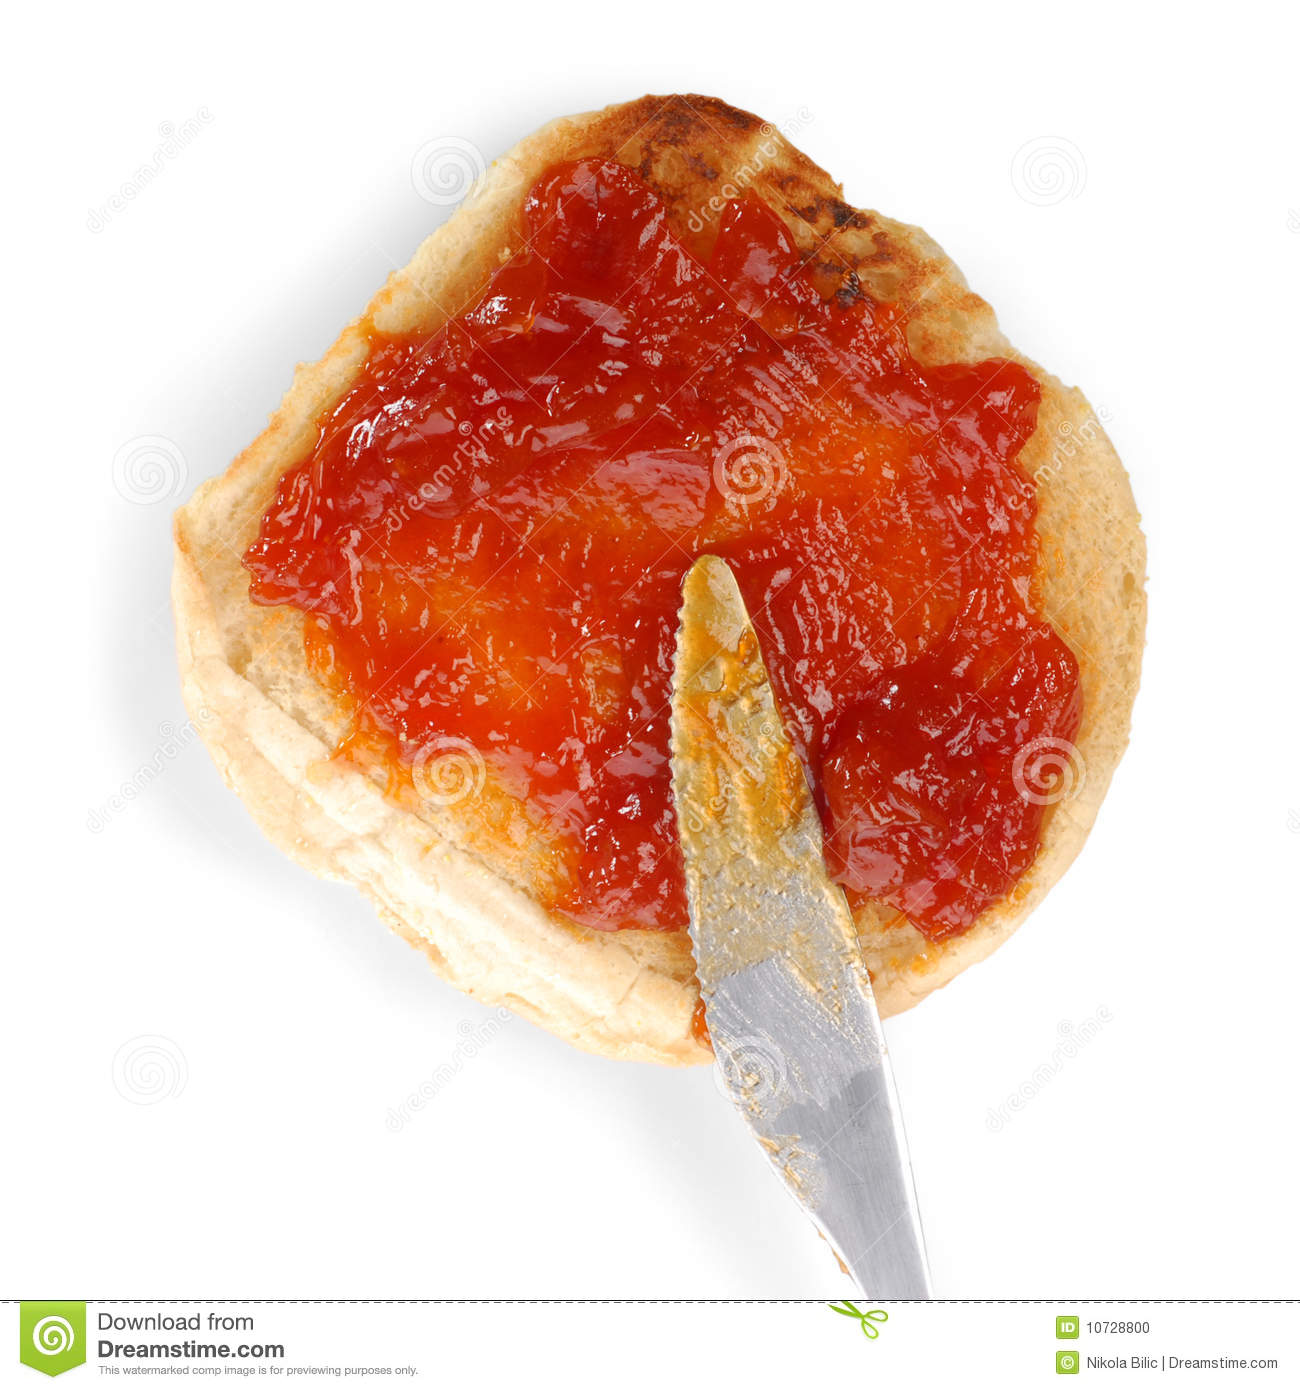 Jam spread being spread onto a piece of bread.